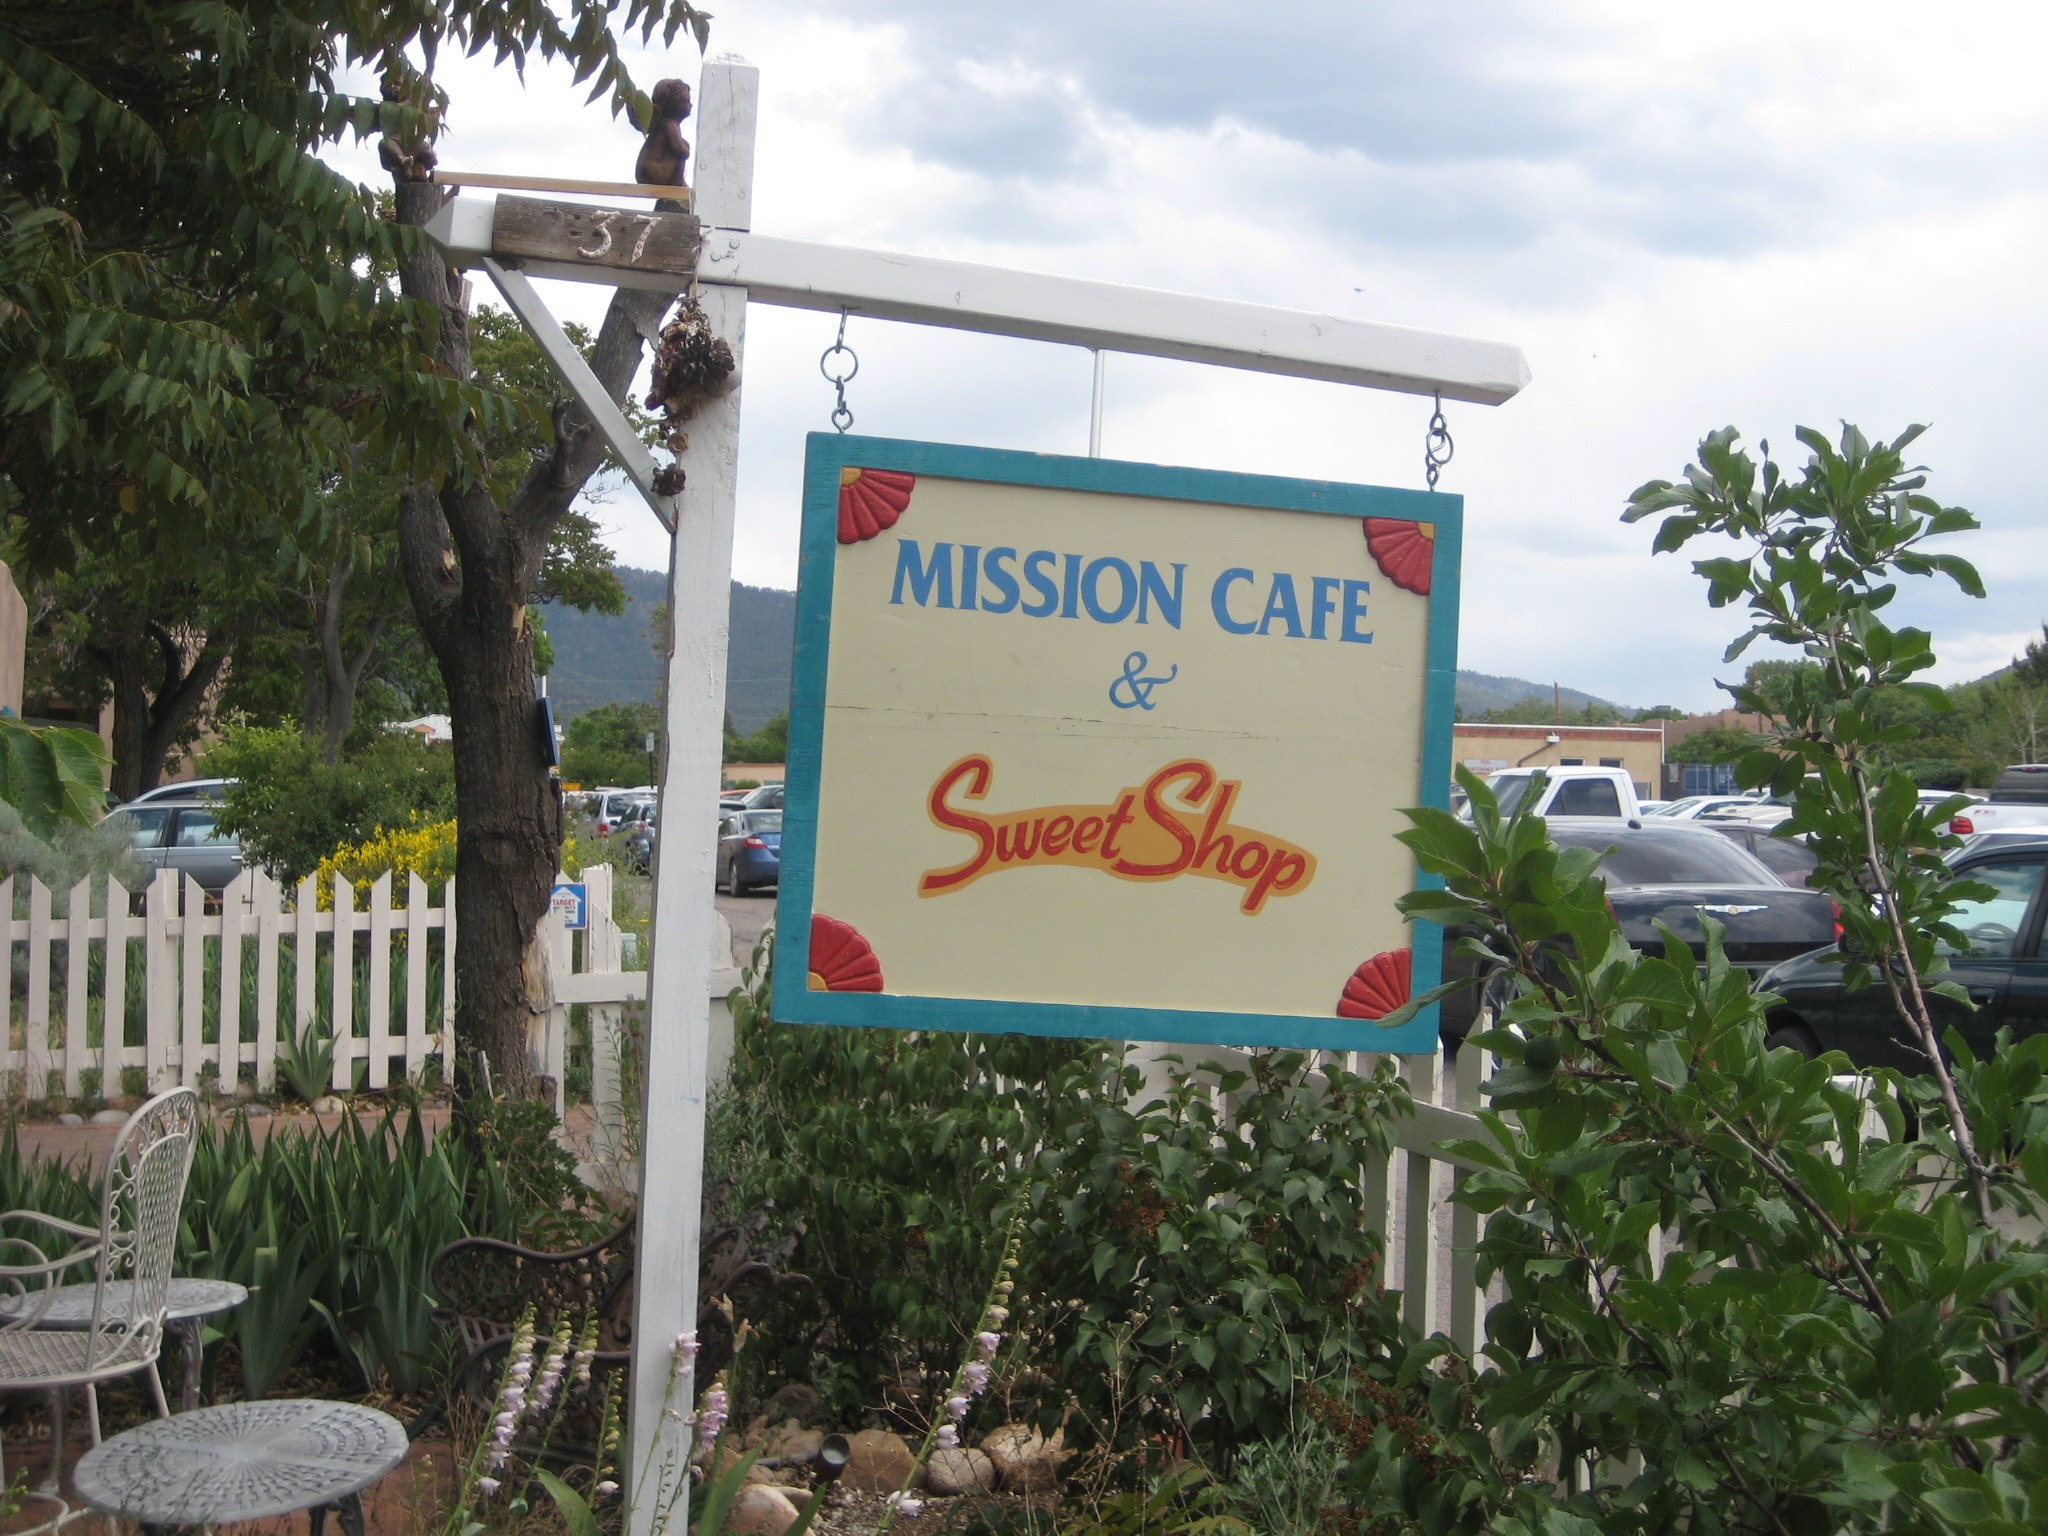 mission cafe and sweet shop